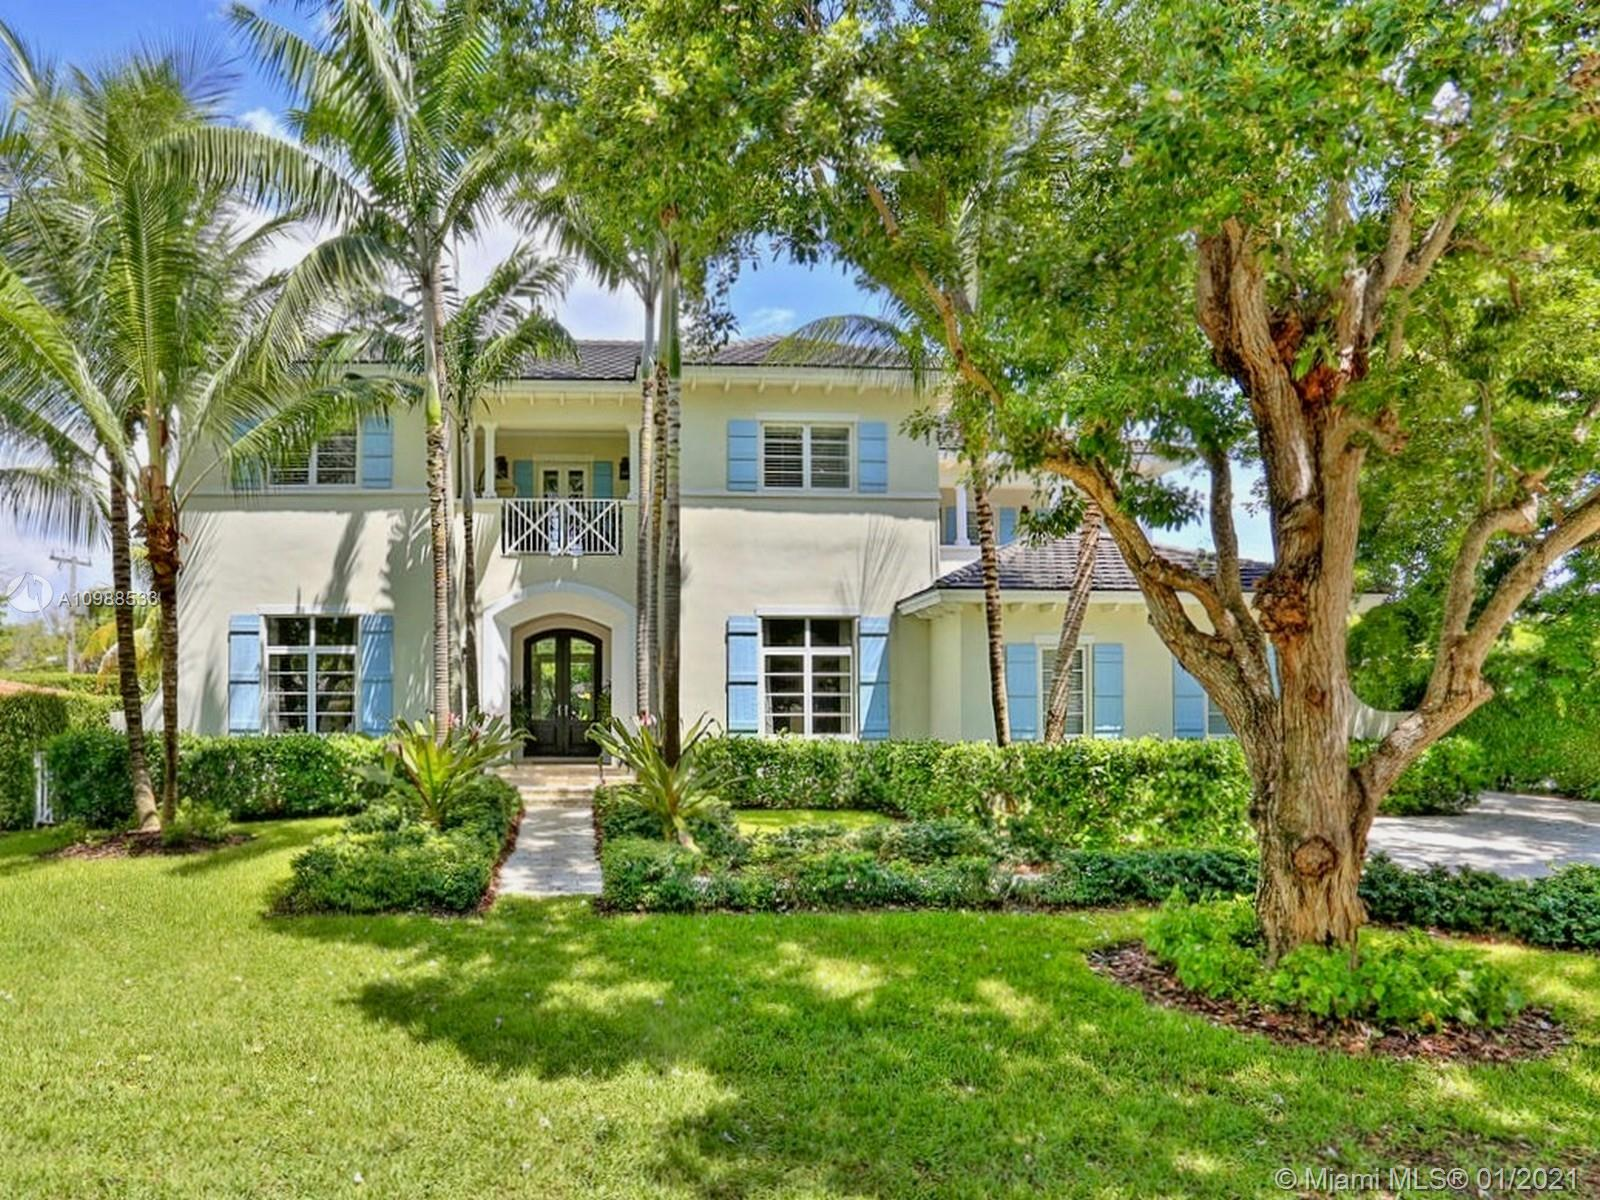 This stunning 5000+ sf island style estate is Gables by the Sea living at its finest. Custom built in 2008, the 5-bed, 5.5-bath, 2-story home features stone floors downstairs, hardwood floors upstairs, high coffered